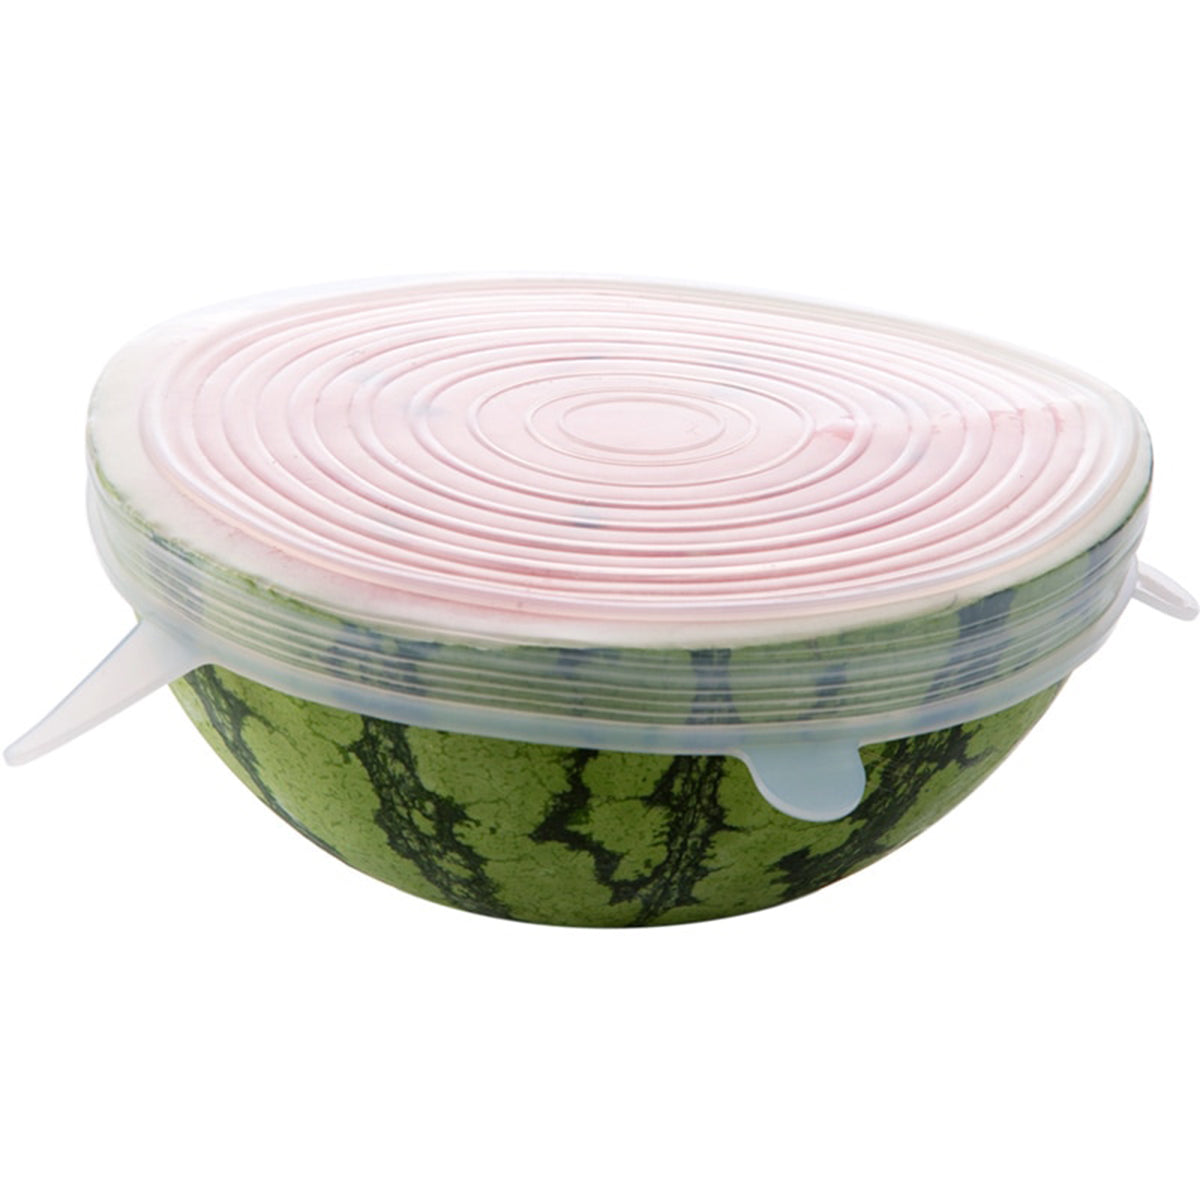 Durable & Reusable Silicon Food Cover Container